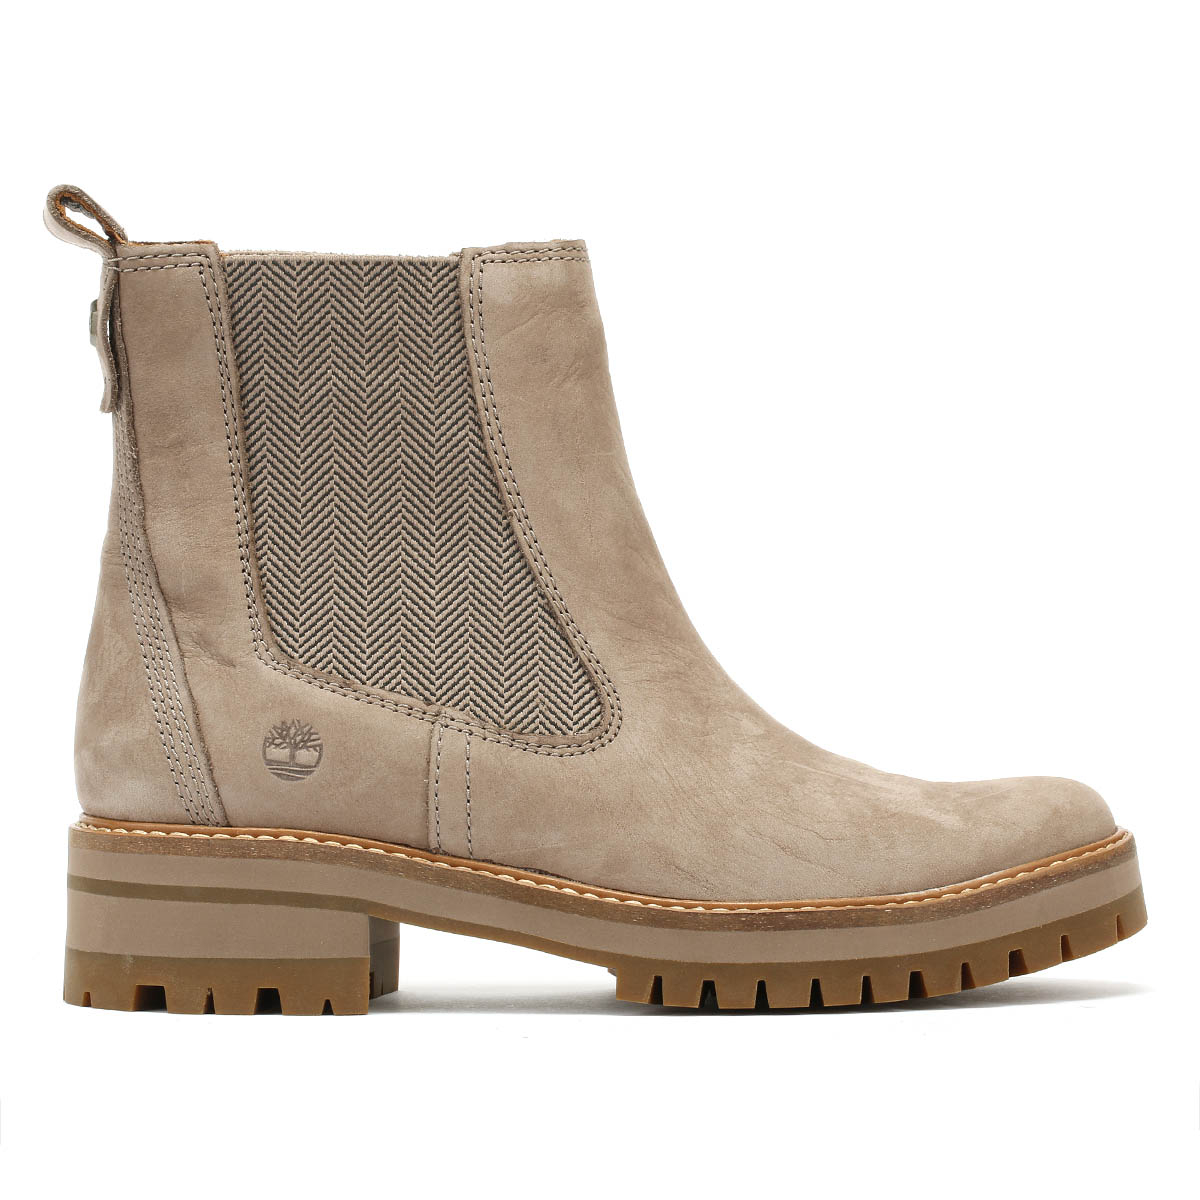 dcf2e9c4e8af4 Timberland Womens Boots Taupe Courmayeur Valley Chelsea Winter Ankle Shoes